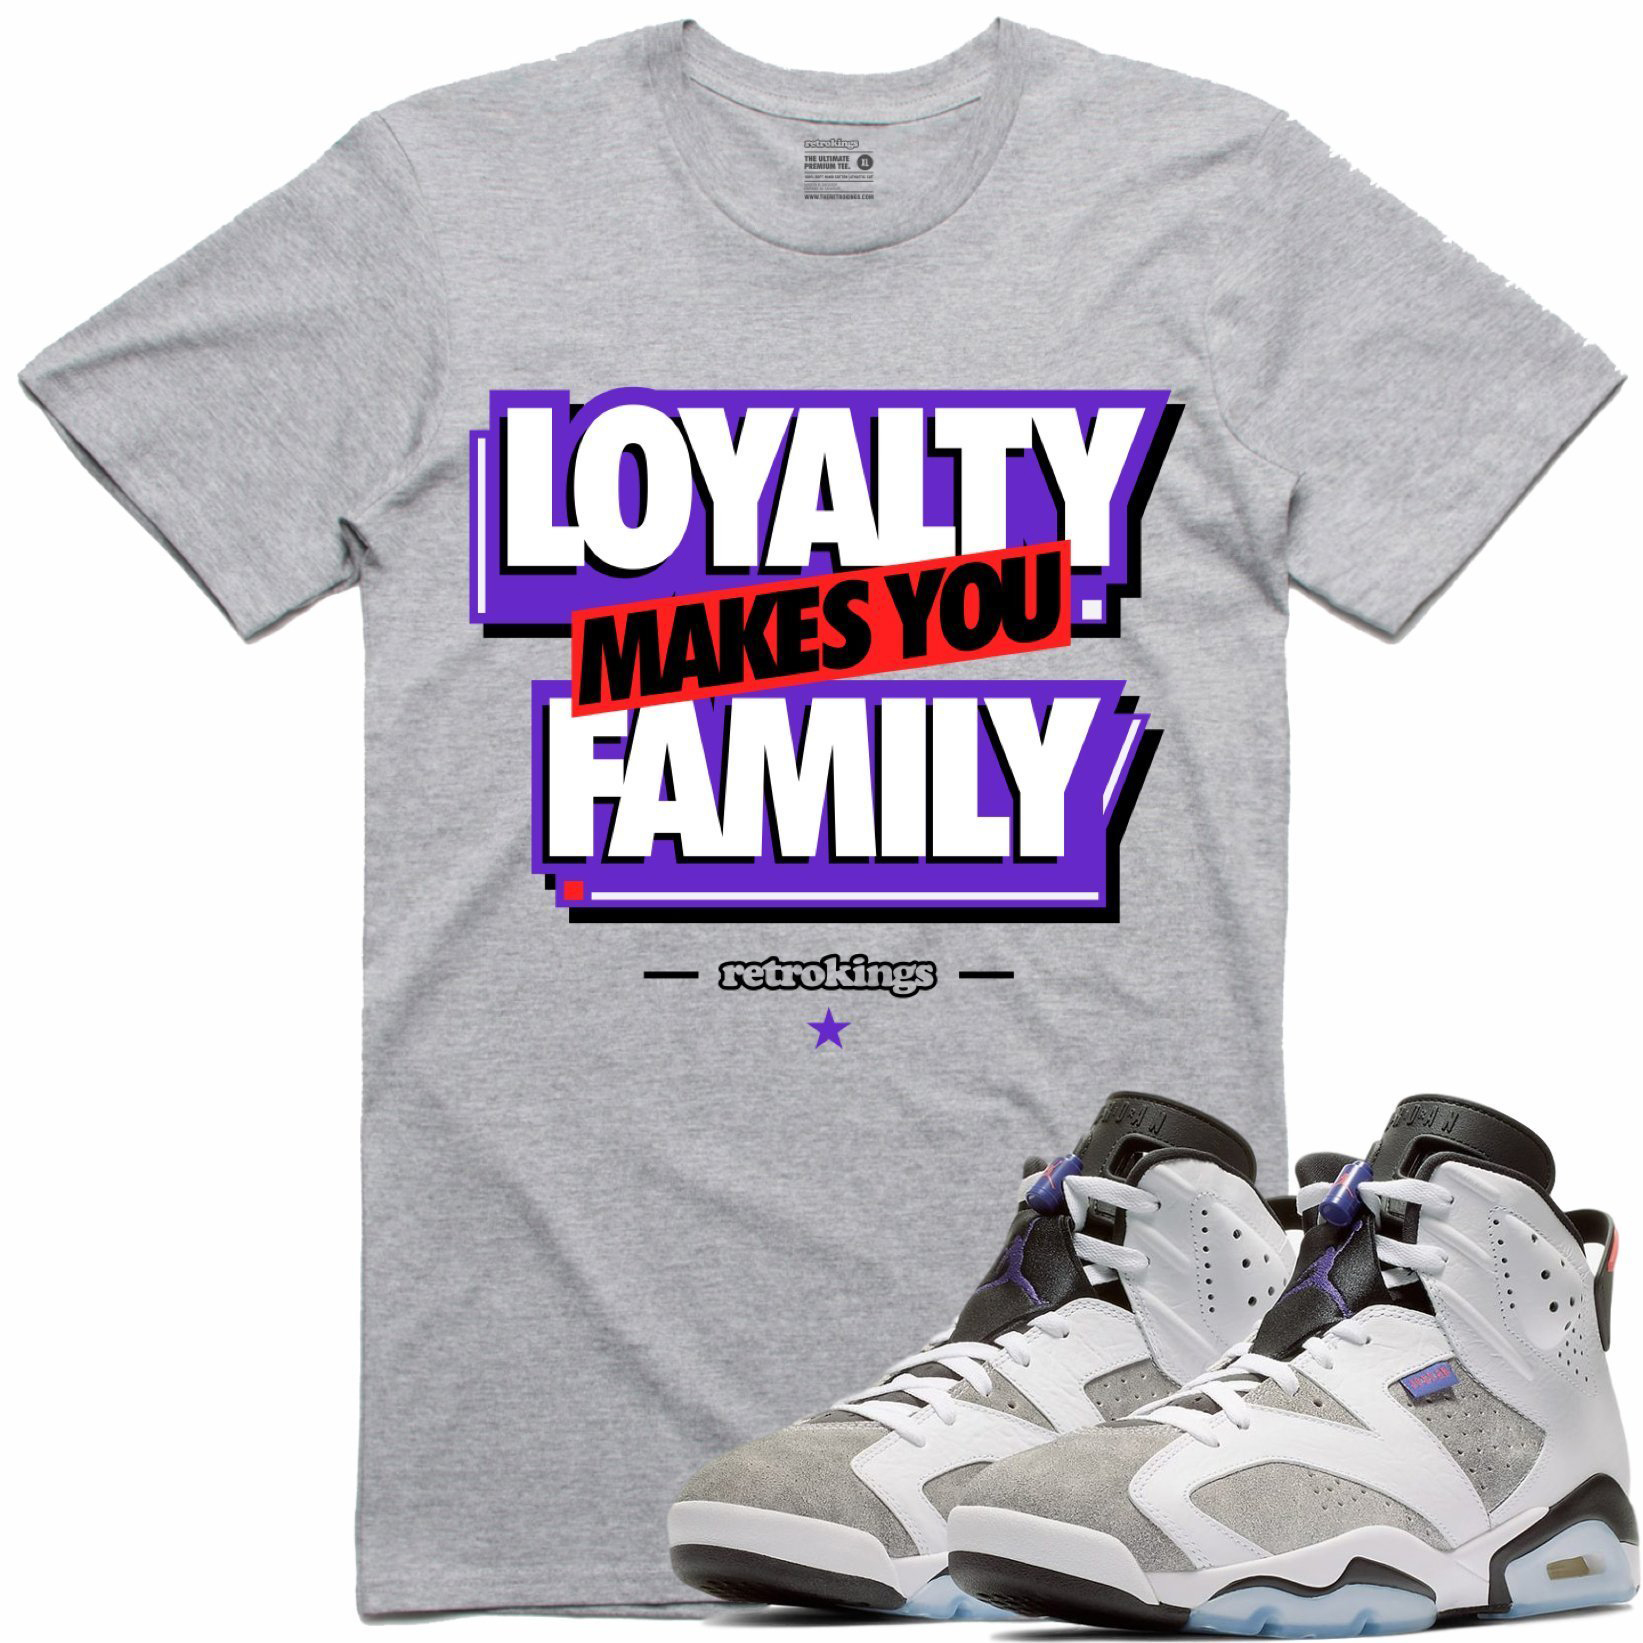 air-jordan-6-flint-grey-sneaker-tee-shirt-retro-kings-1